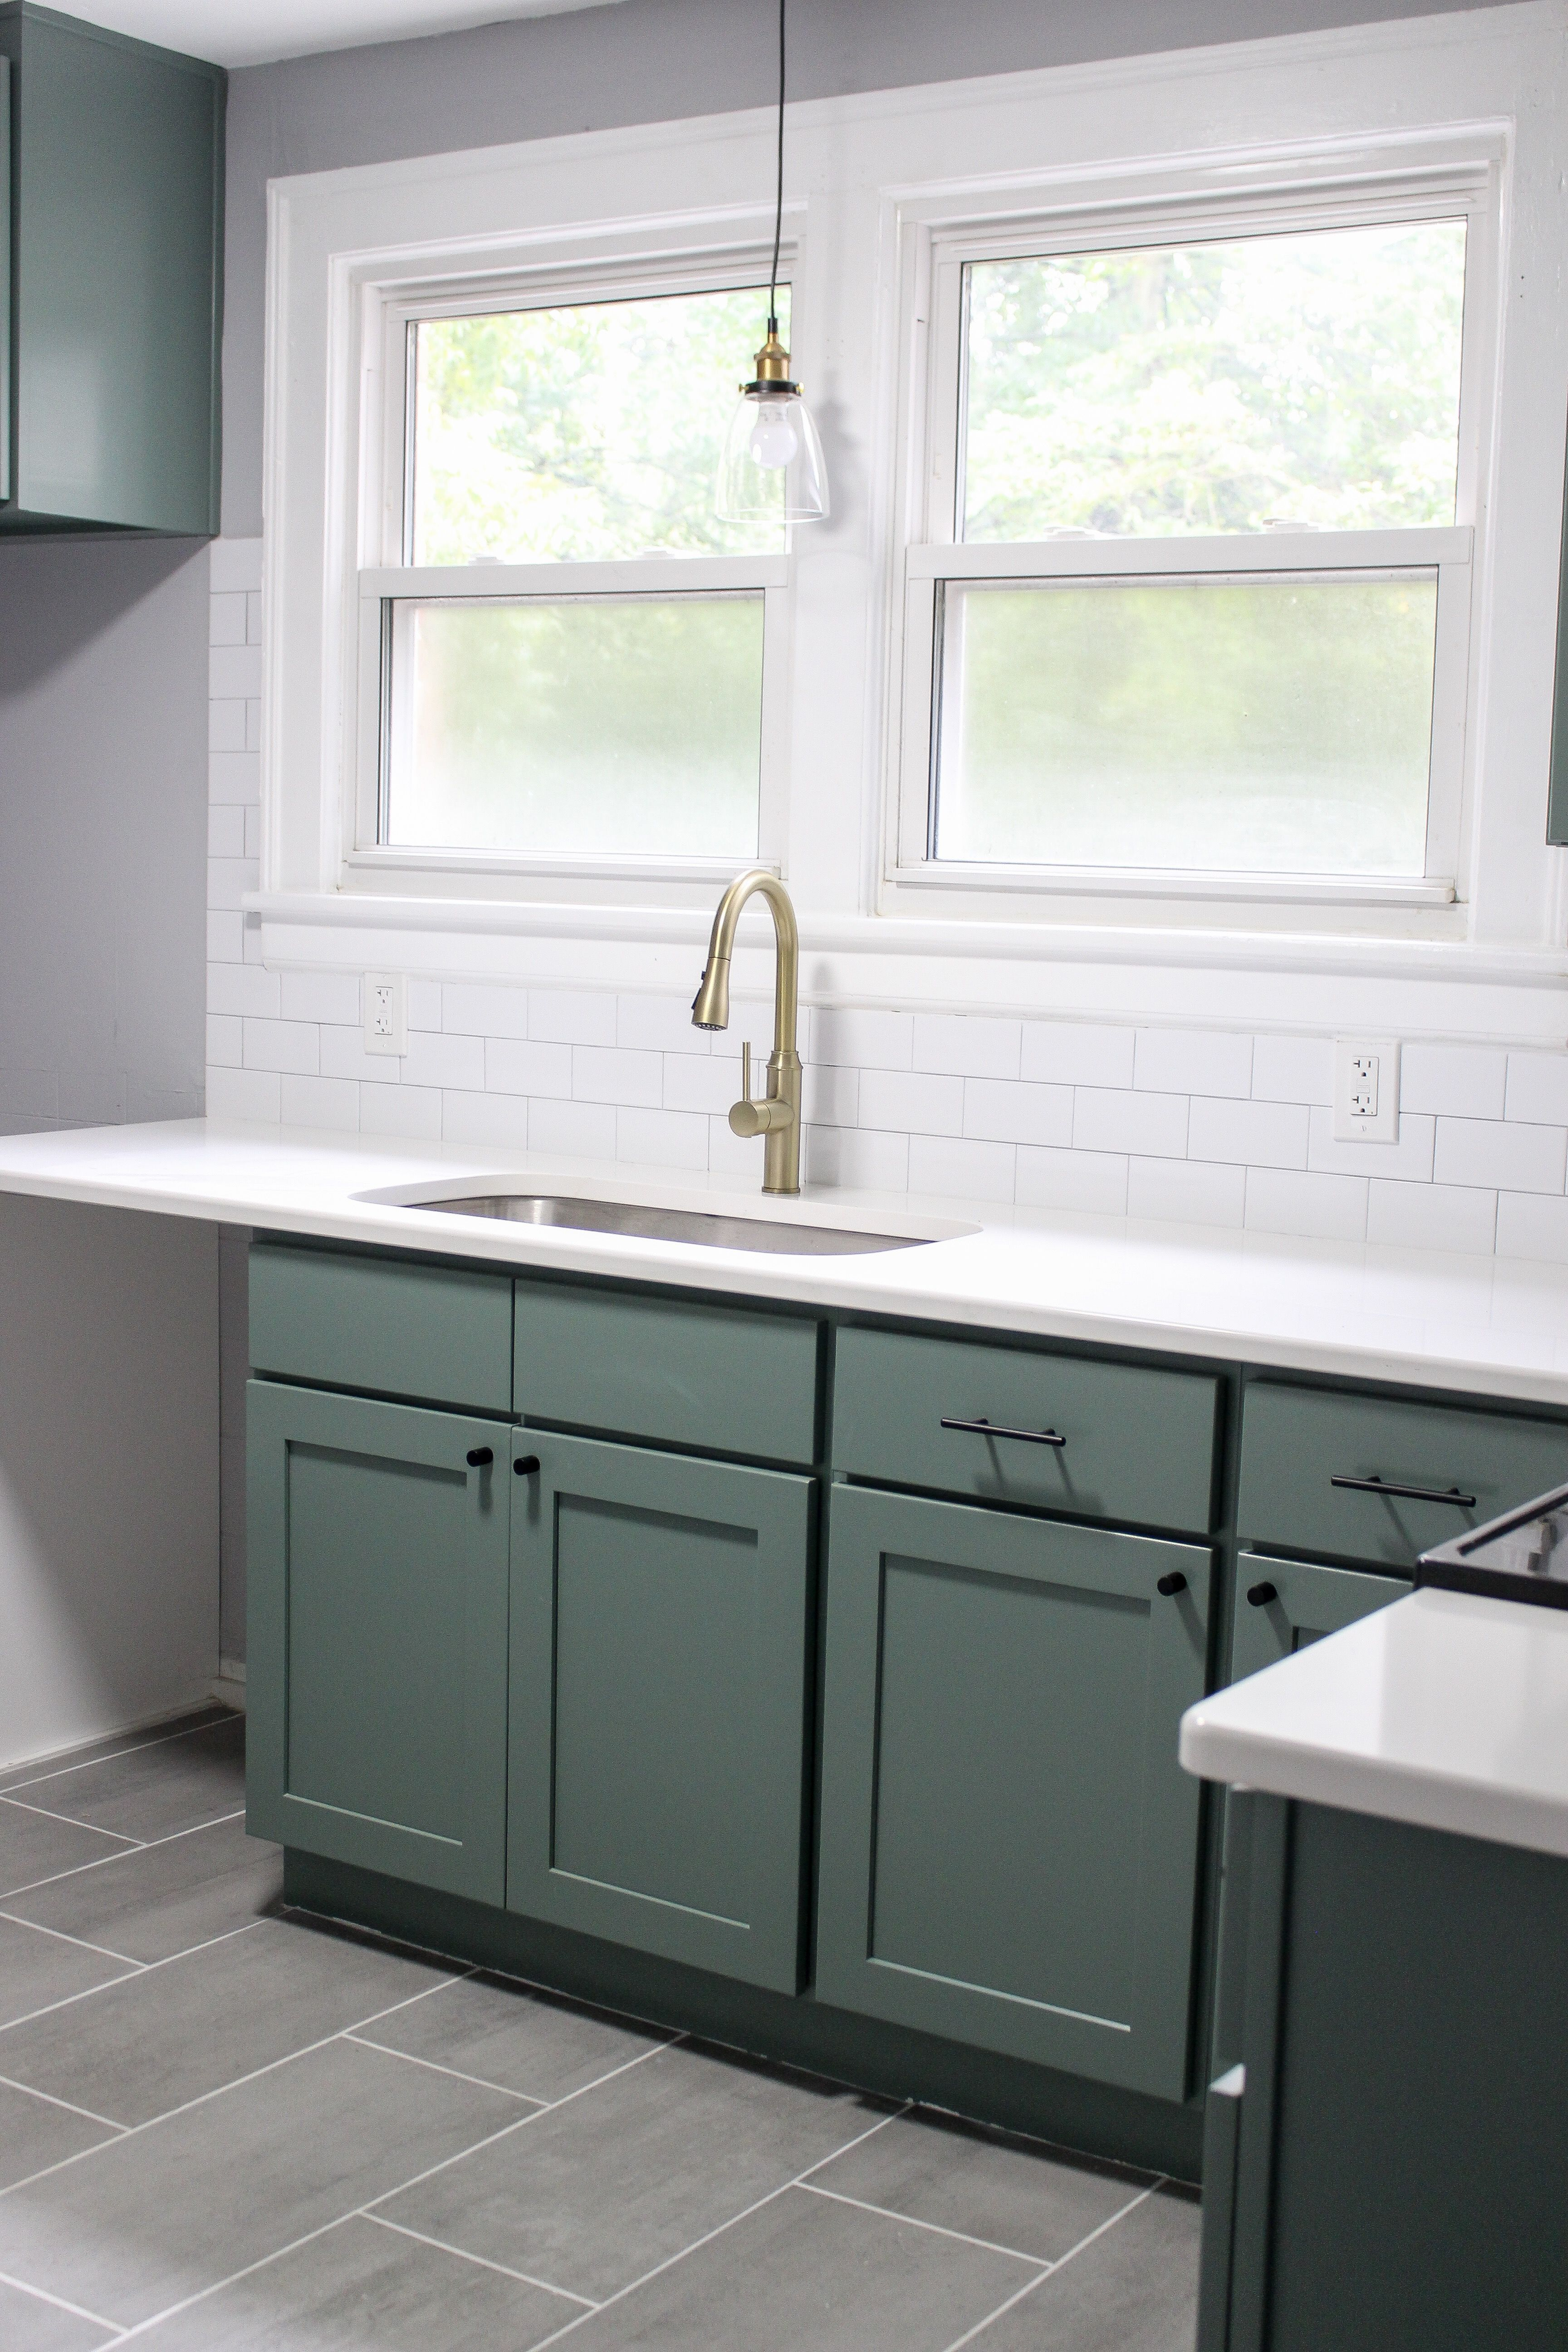 The Perfect Green Cabinet Color Kitchen Cabinets Color Combination Coastal Kitchen Design Paint Cabinets White